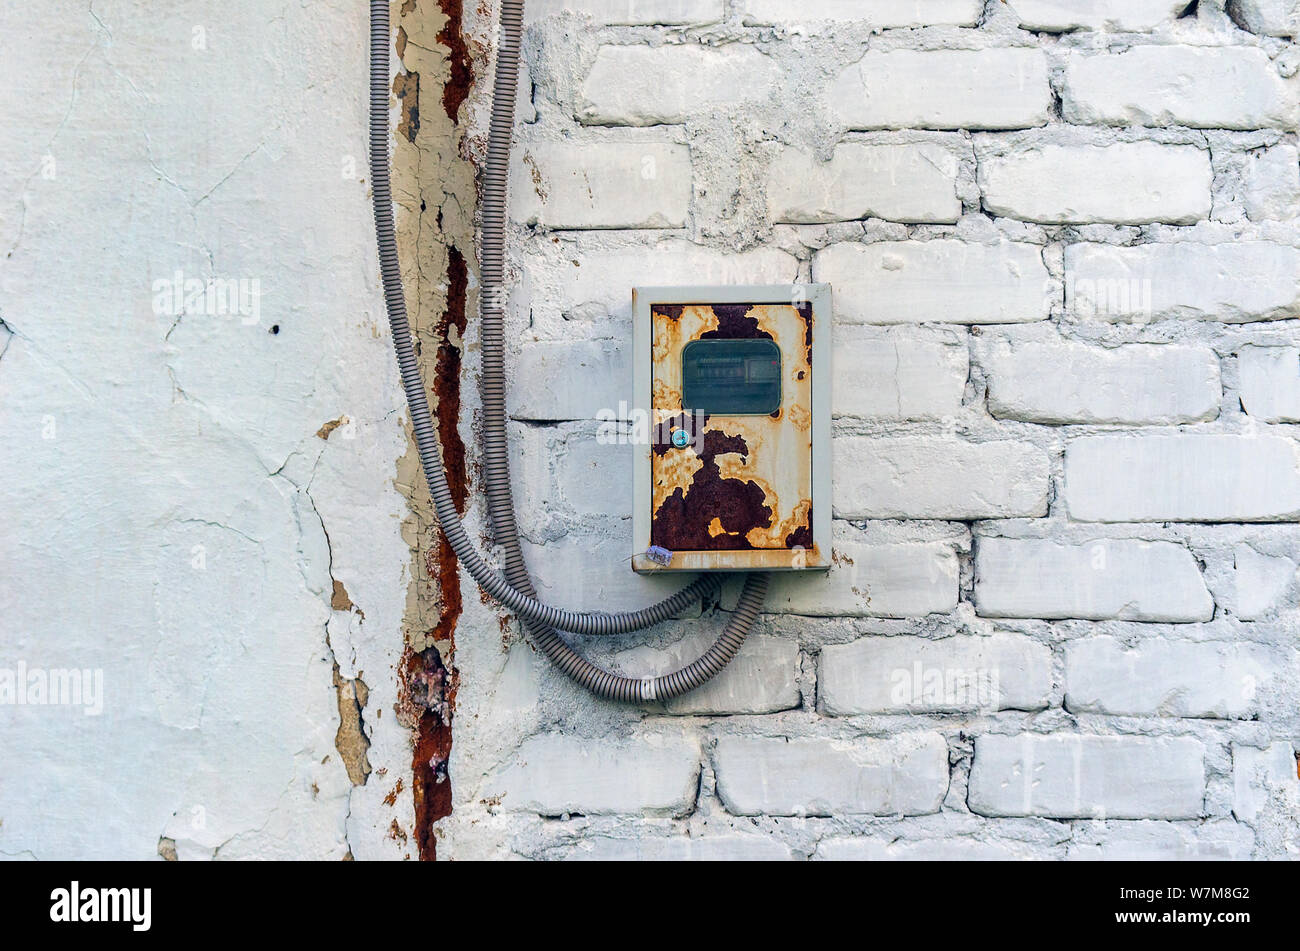 Rusty Distribution Board Metal Box with Electricity Meter, Seal and Two Cables in Steel Coil Housing on a White Brick Wall Outdoors. Stock Photo